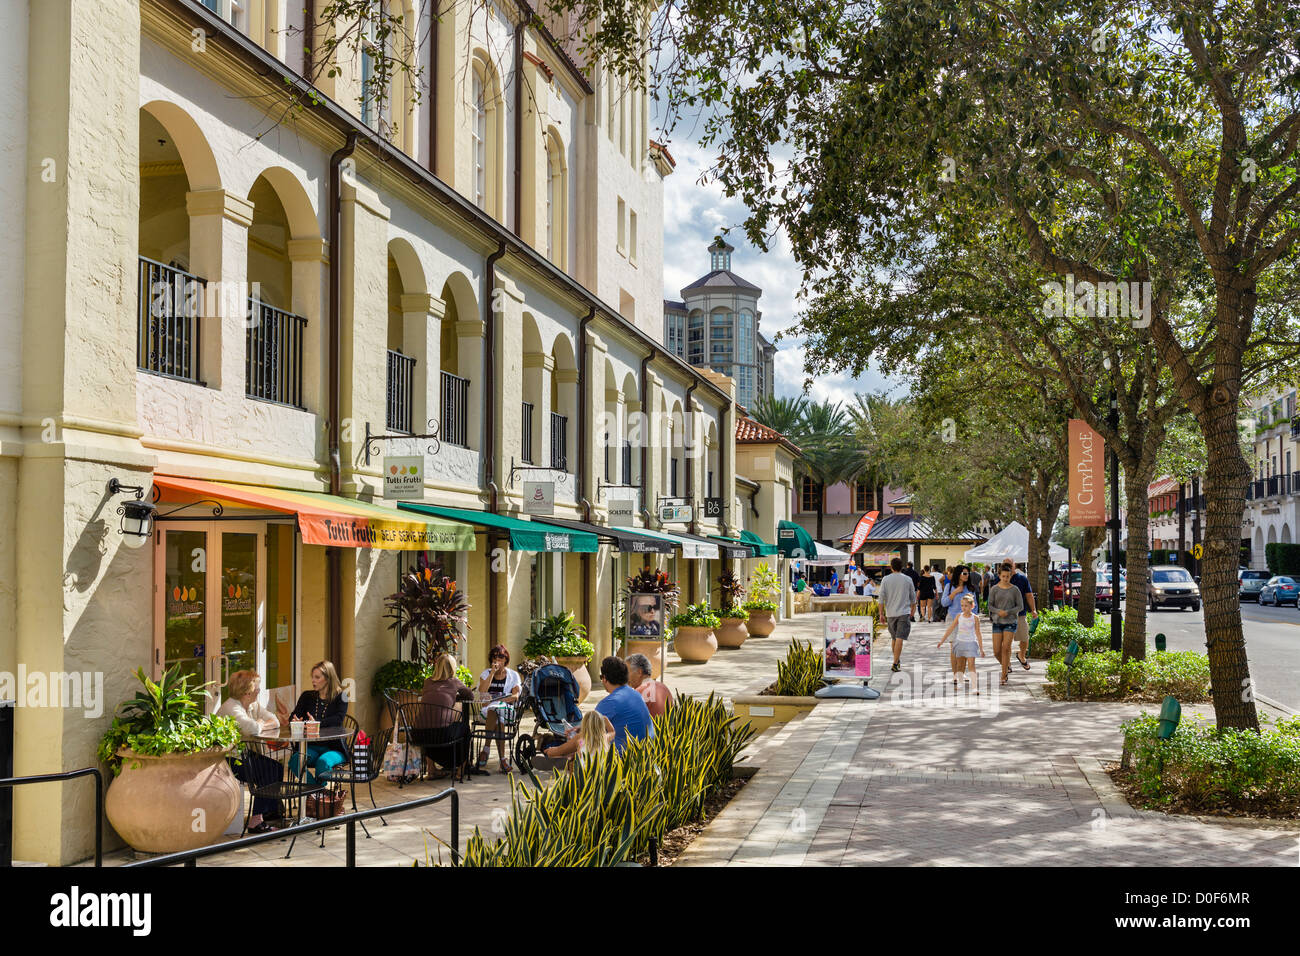 Café et boutiques le long du théâtre Harriet Himmel, Cityplace, Rosemary Sud Avenue, West Palm Beach, Photo Stock